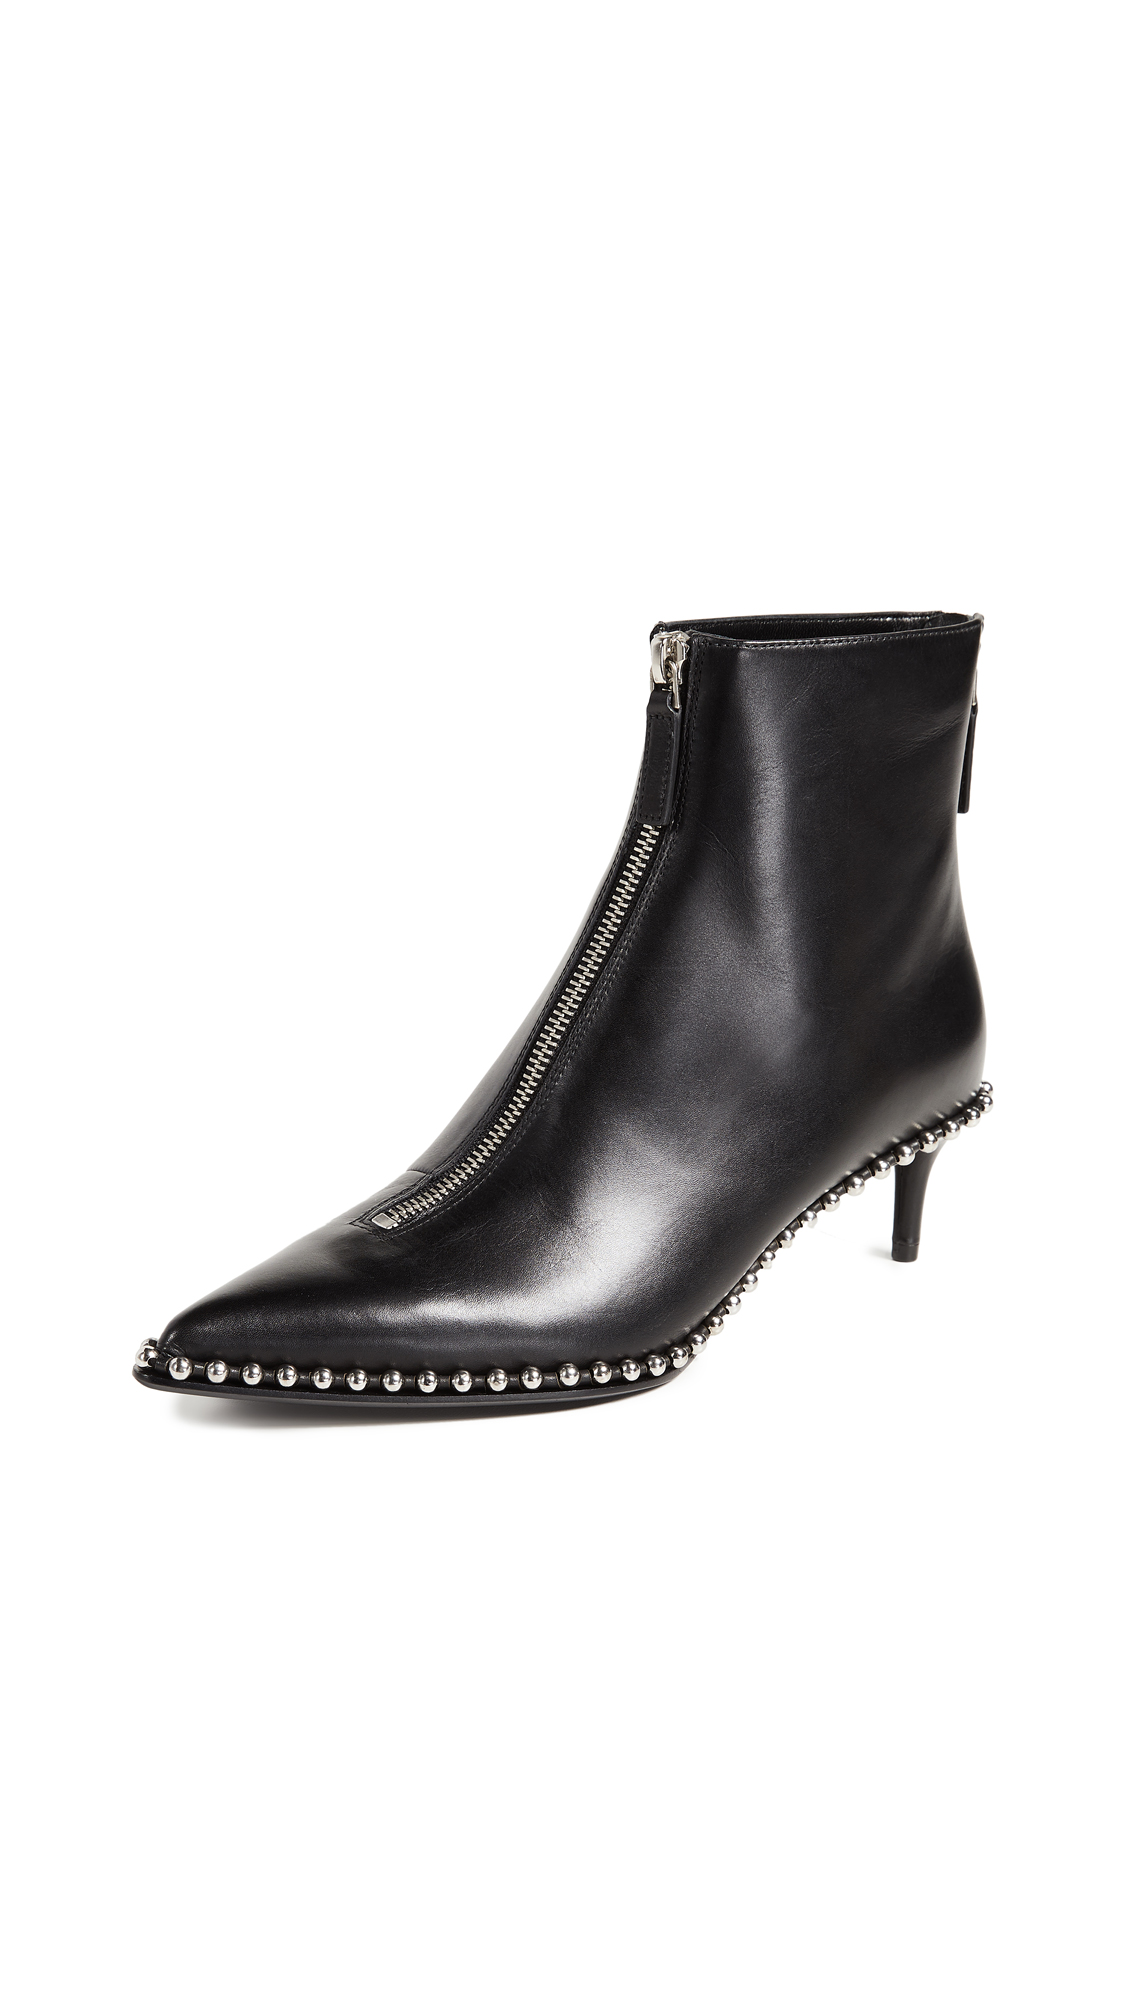 Alexander Wang Eri Low Booties - Black